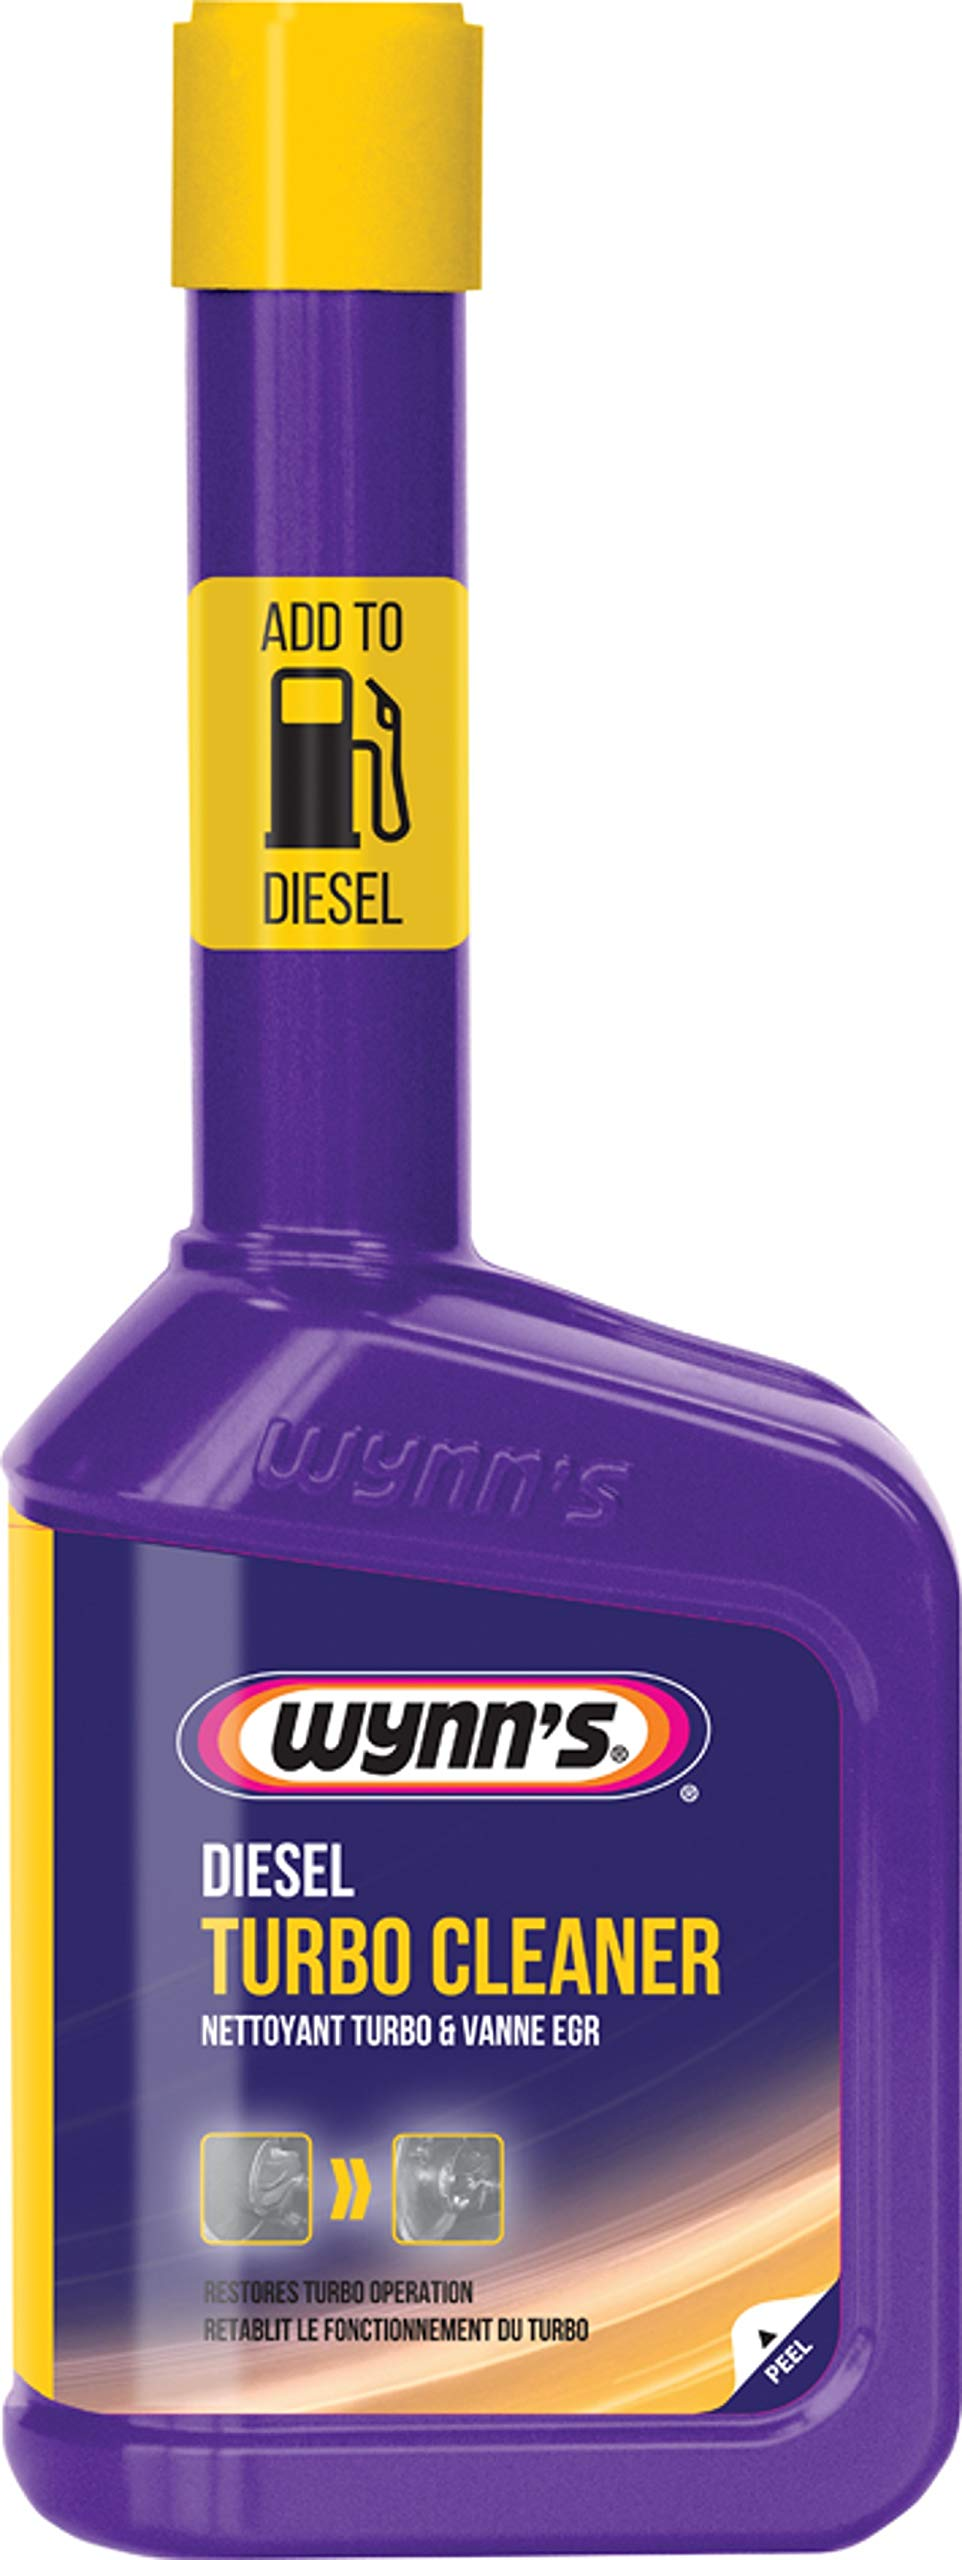 Fastcar Wynn's Diesel Turbo Cleaner Restores Engine Power 10.99 oz | for All Diesel Engines Clears Blocked Turbochargers by Fastcar